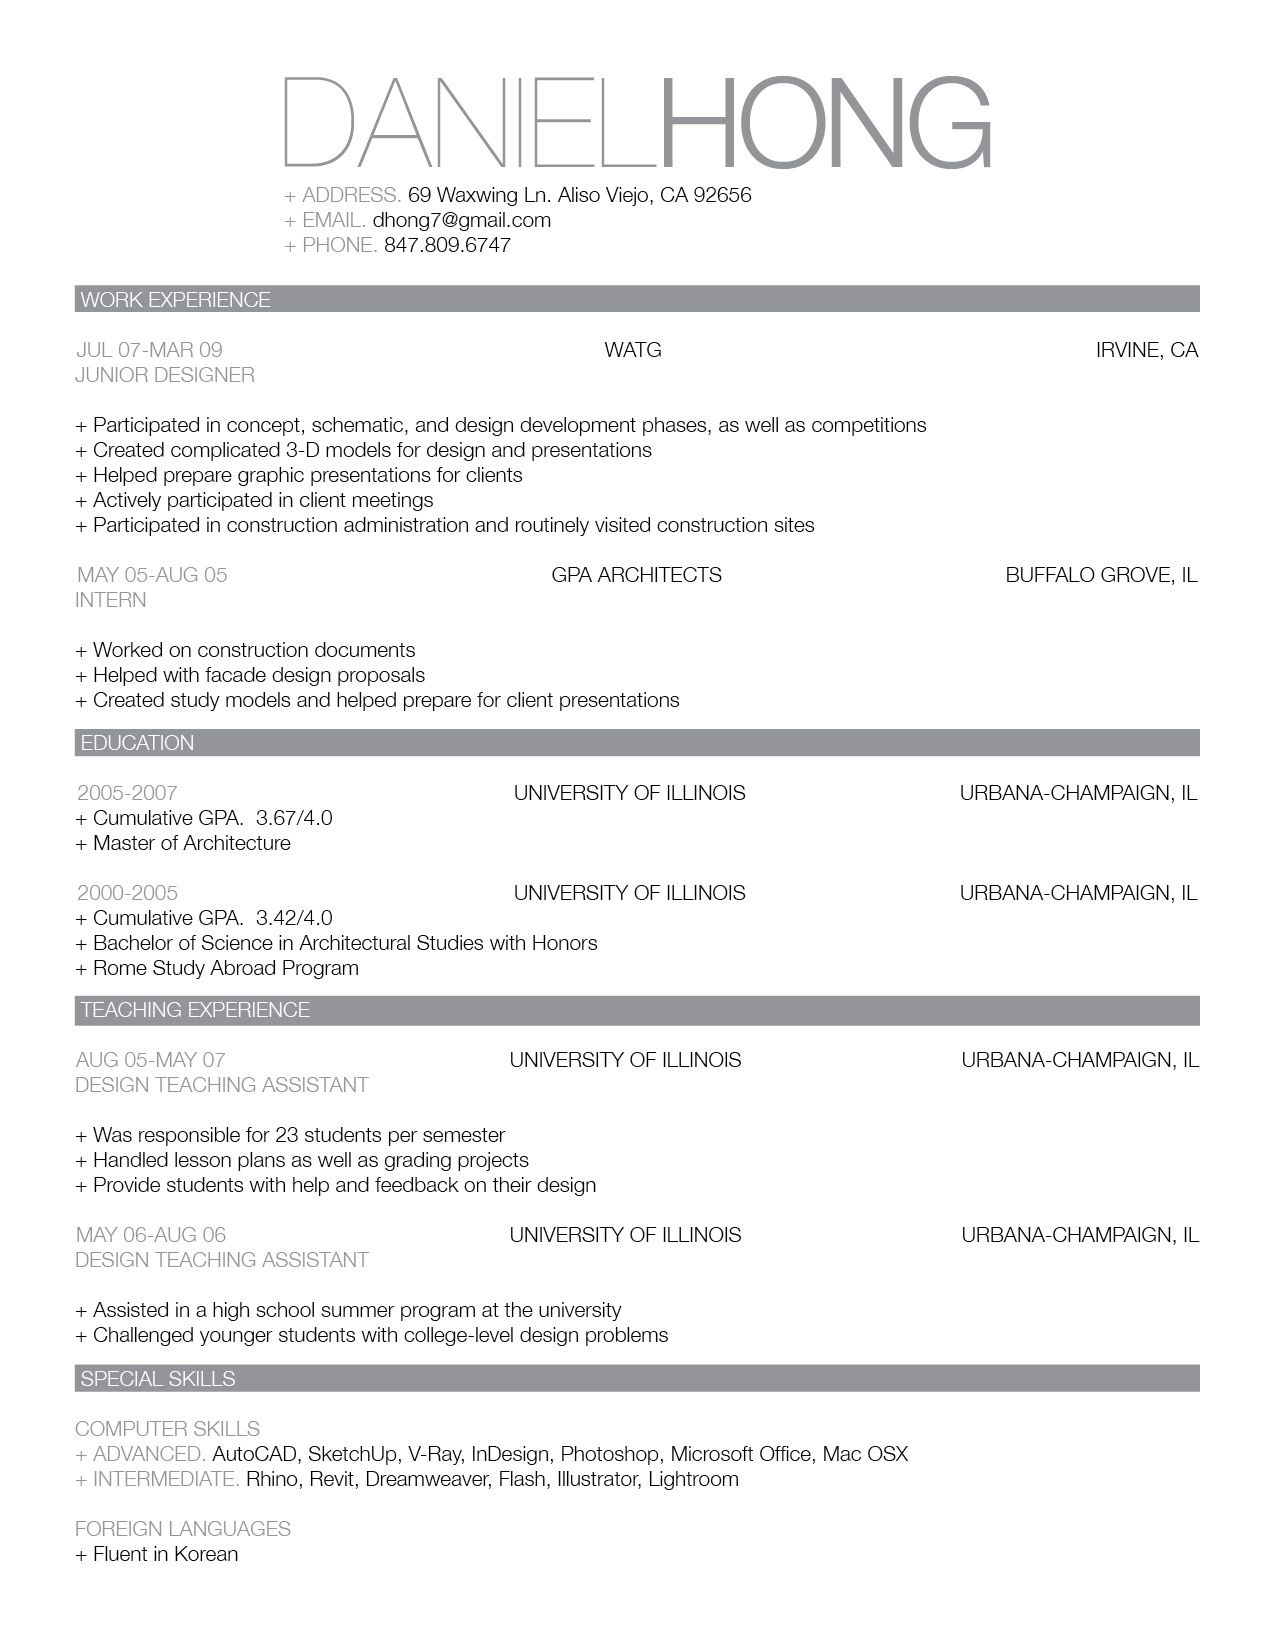 Resume Format Samples Updated Cv And Work Sample  Professional Resume Sample Resume